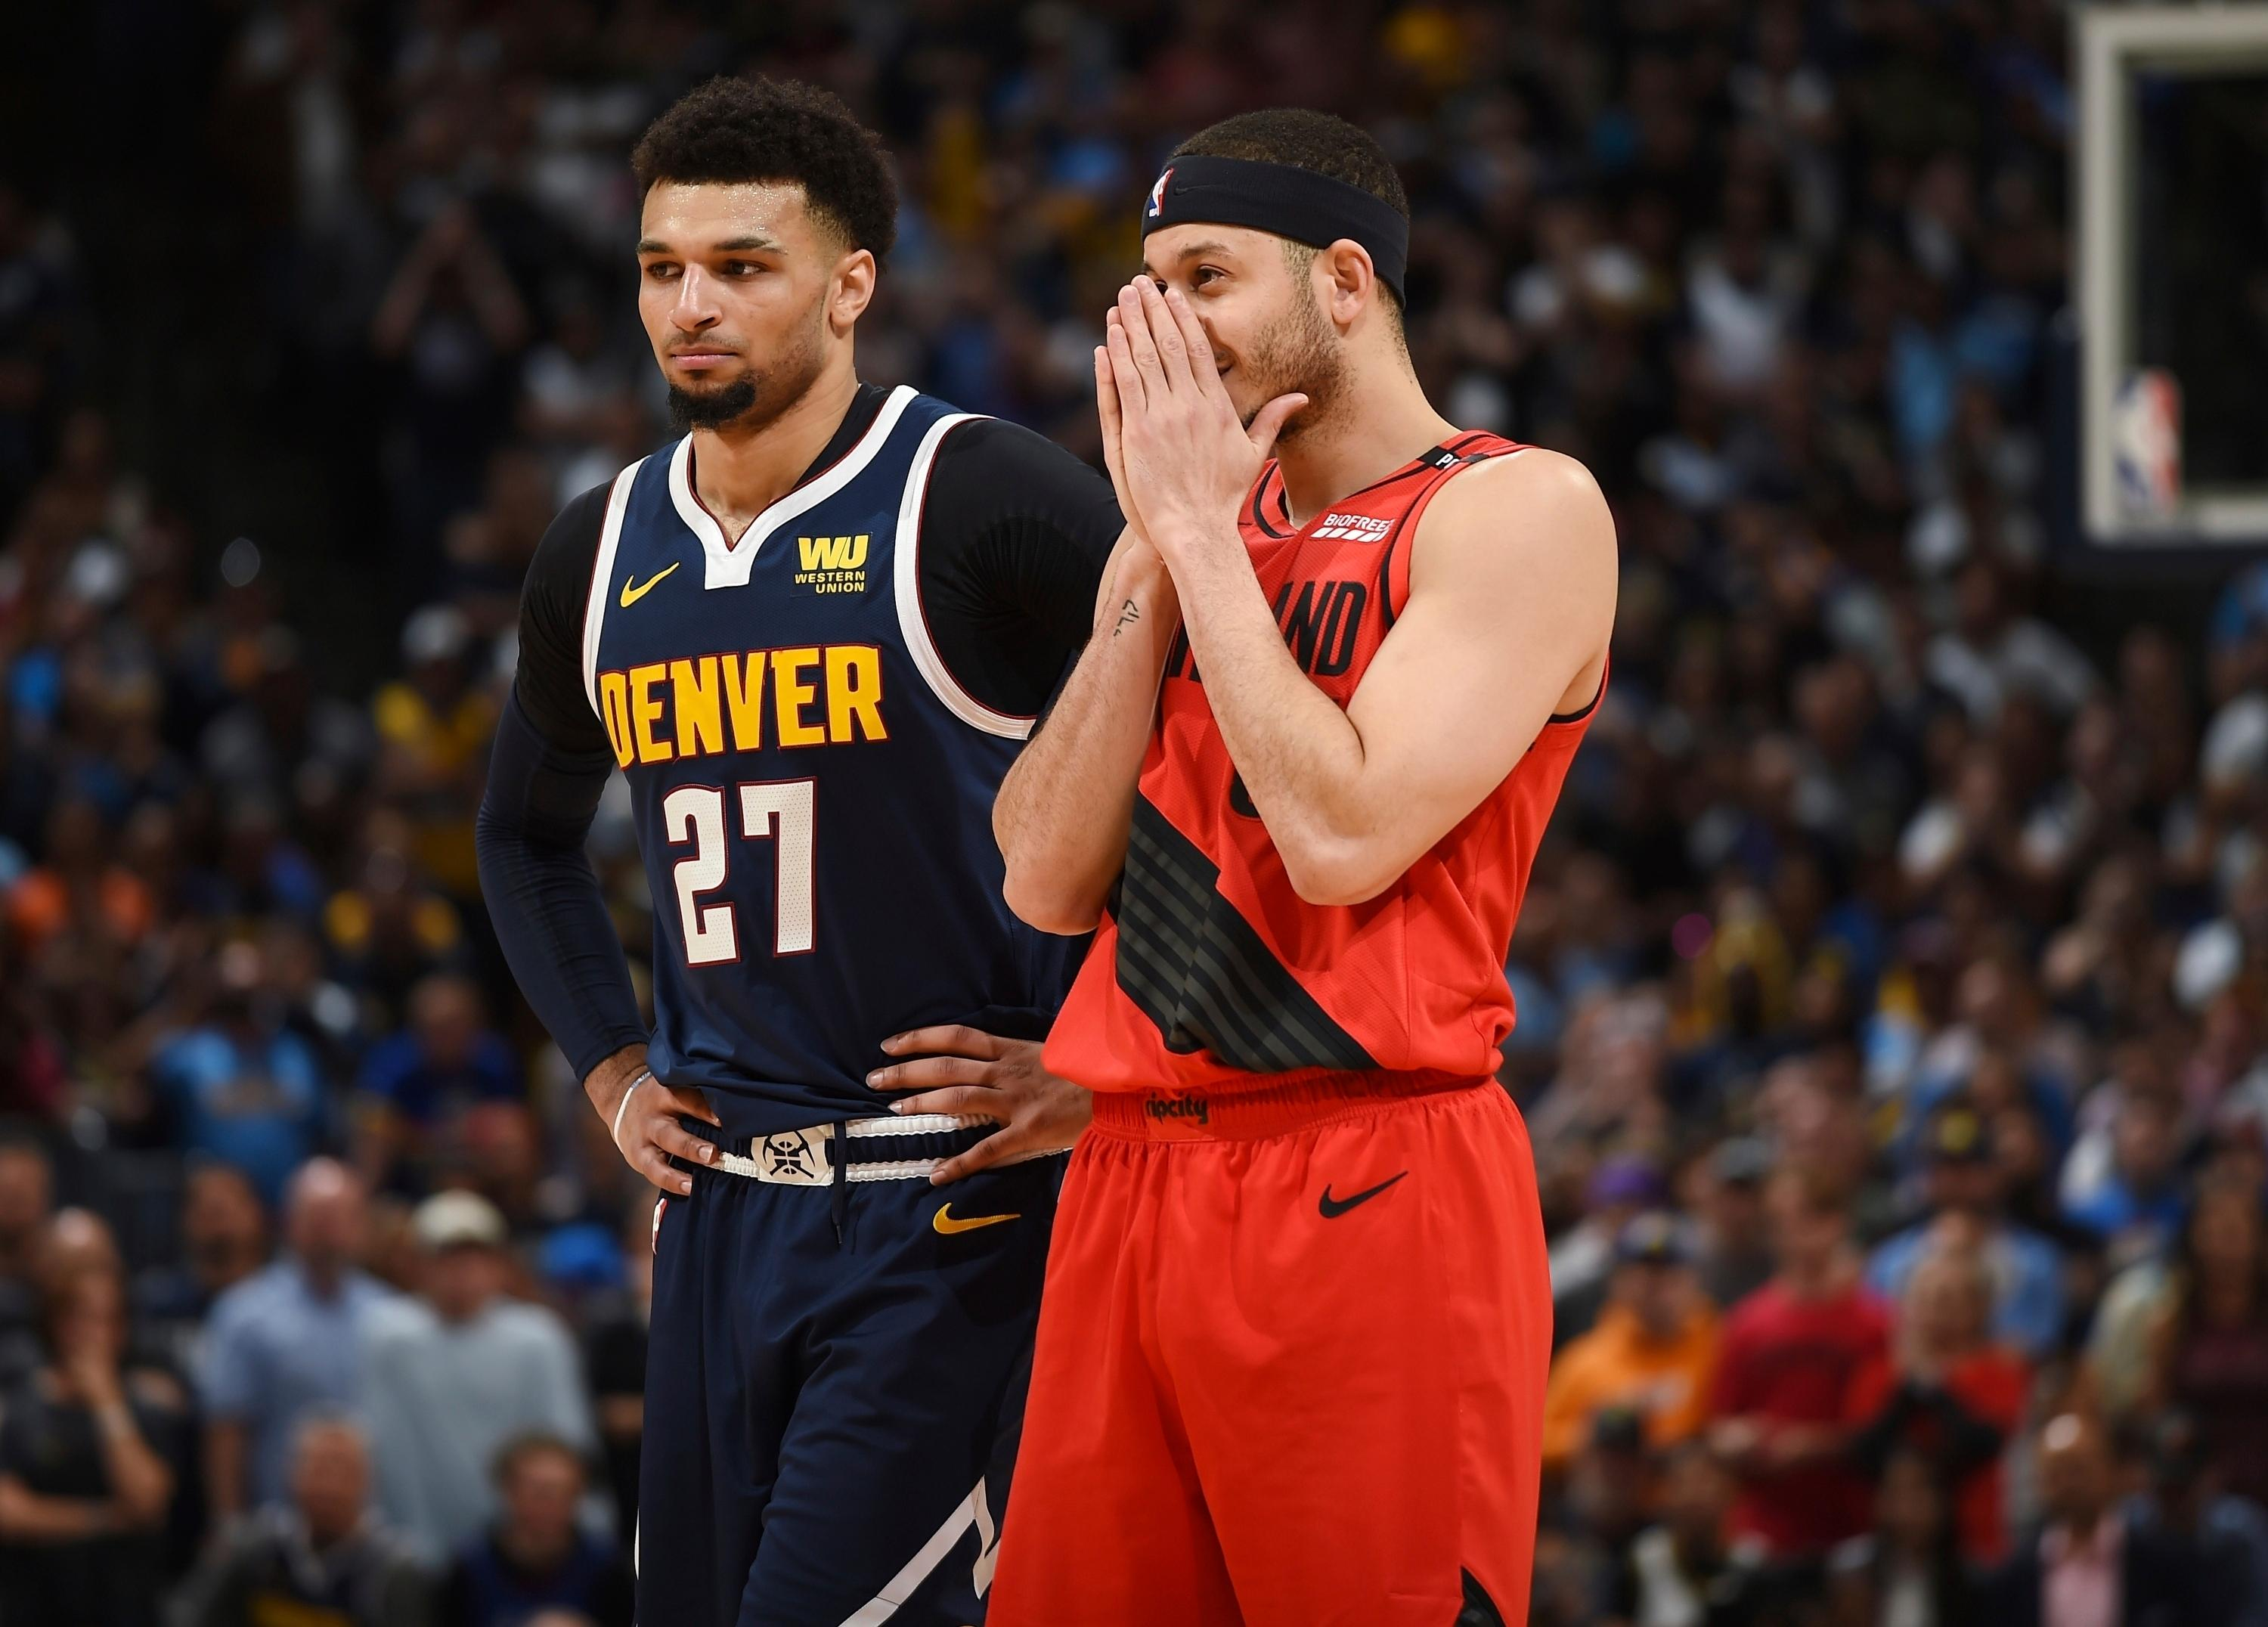 CORRECTS BYLINE IN SIGNOFF TO JOHN LEYBA NOT DAVID ZALUBOWSKI Denver Nuggets guard Jamal Murray, left, looks on as Portland Trail Blazers guard Seth Curry reacts as time runs down in the second half of Game 7 of an NBA basketball second-round playoff series Sunday, May 12, 2019, in Denver. The Trail Blazers won 100-96. (AP Photo/John Leyba)